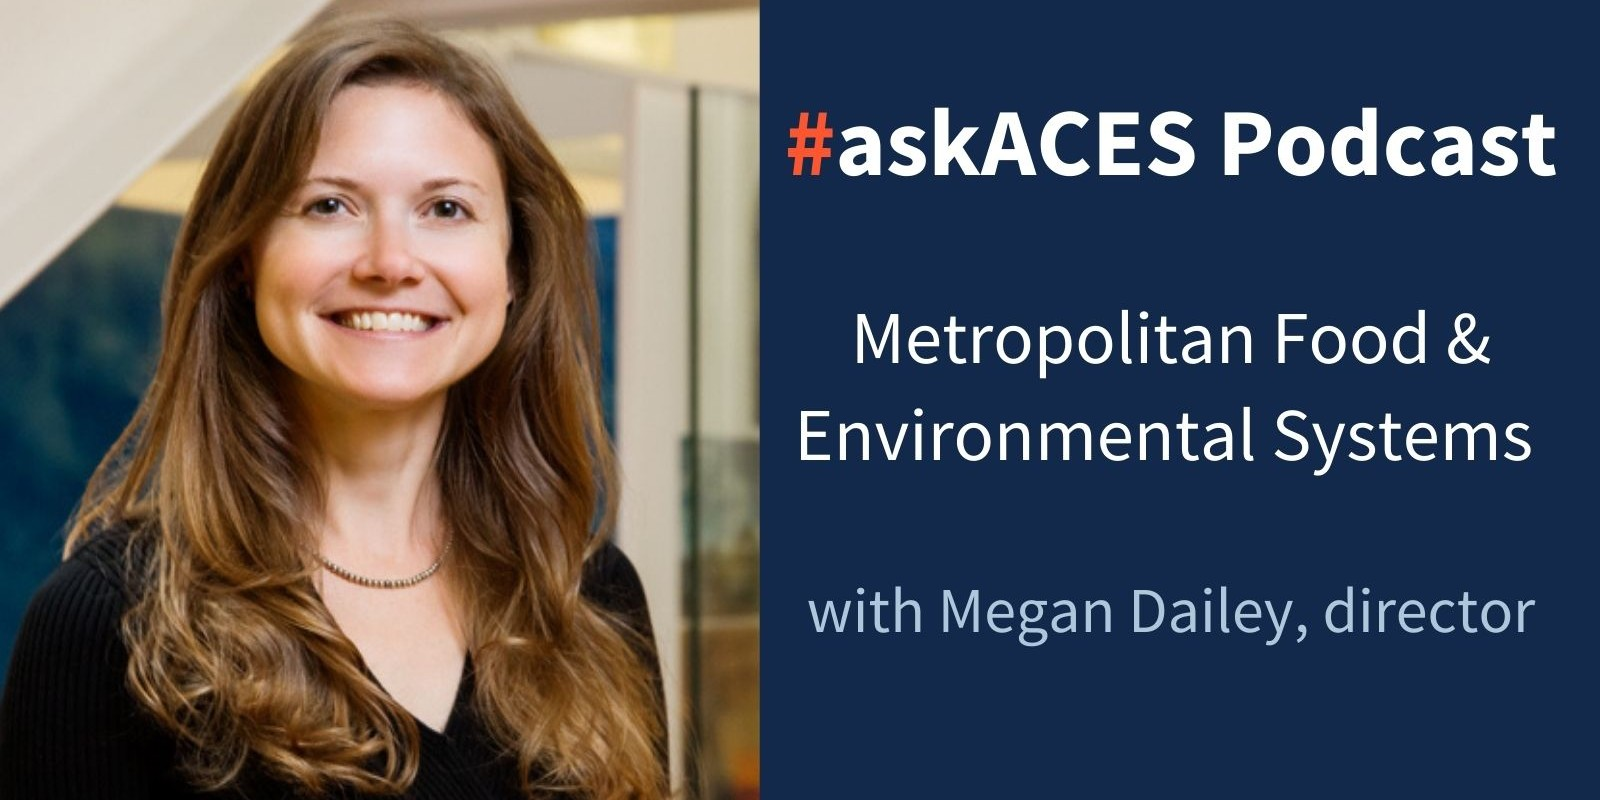 Megan Dailey photo with askACES podcast text